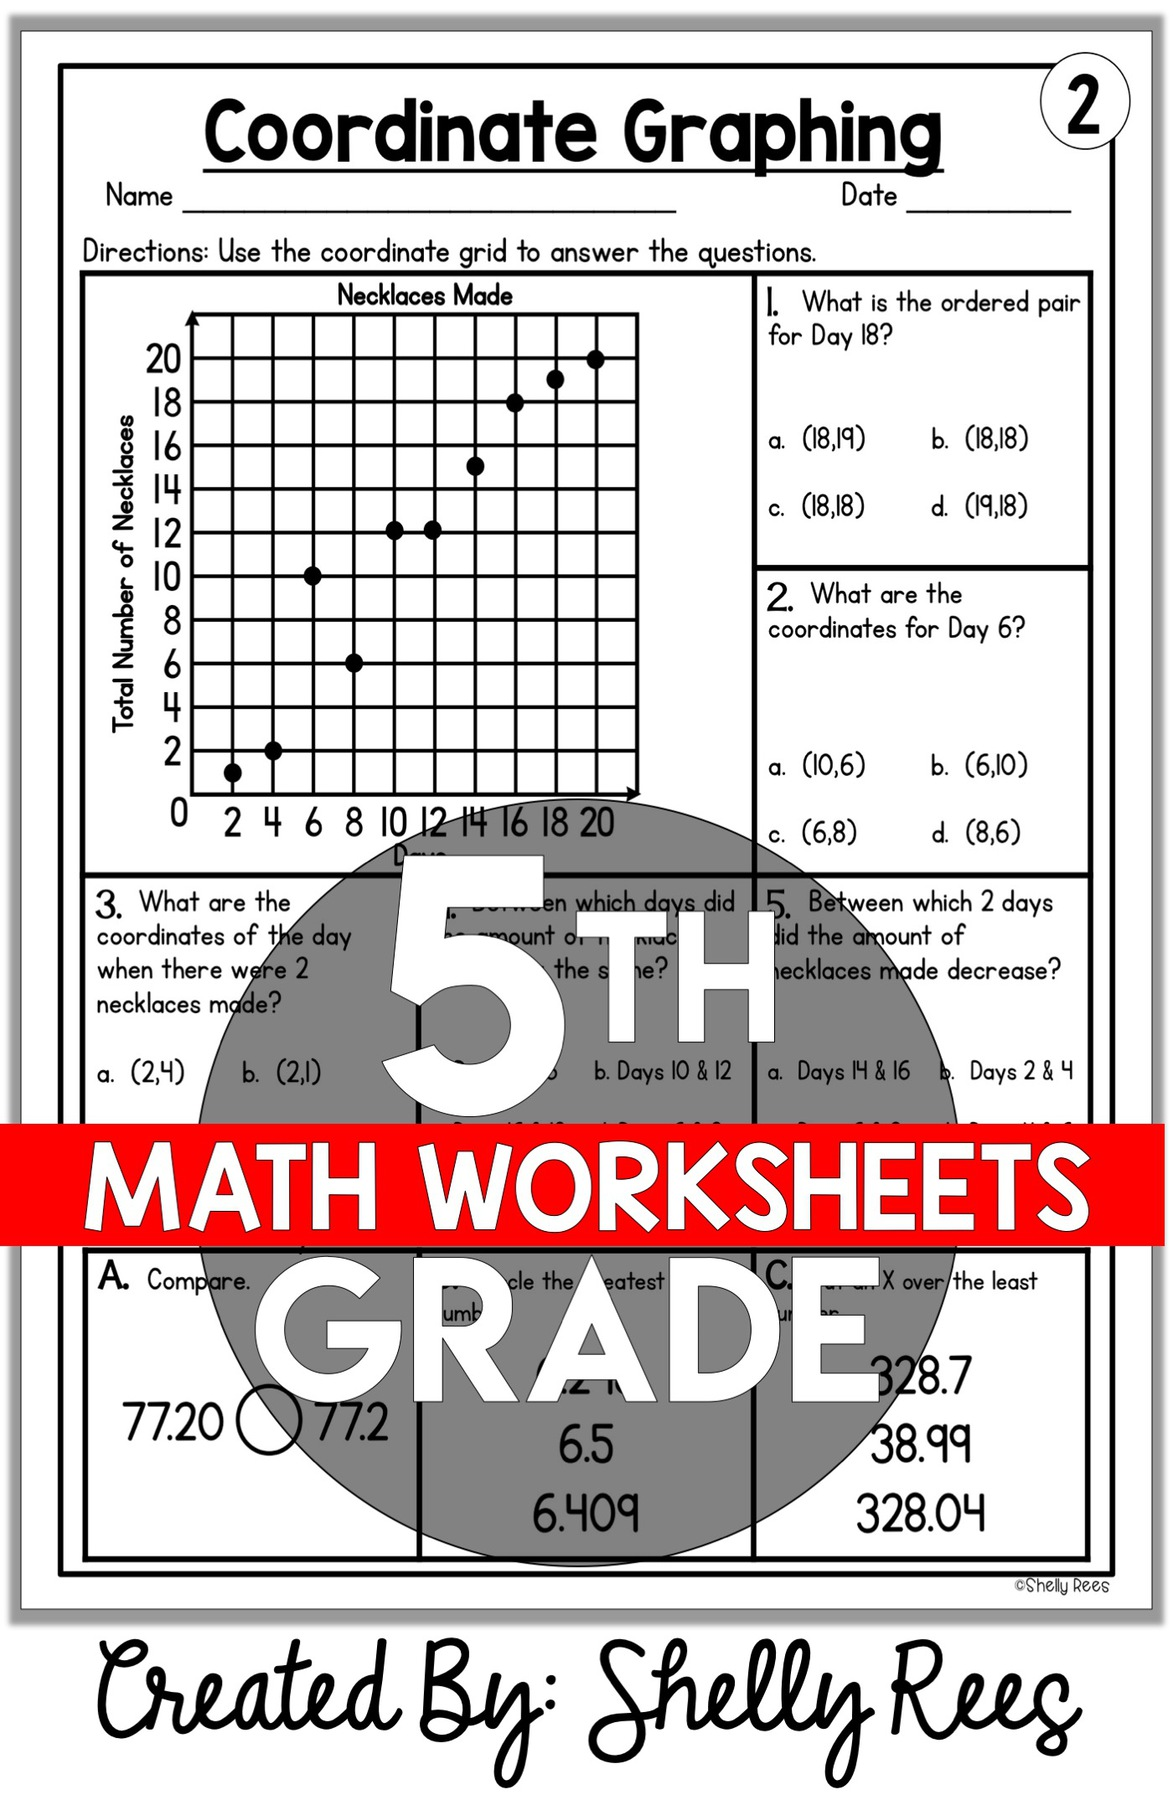 5th Grade Math Worksheets Free And Printable